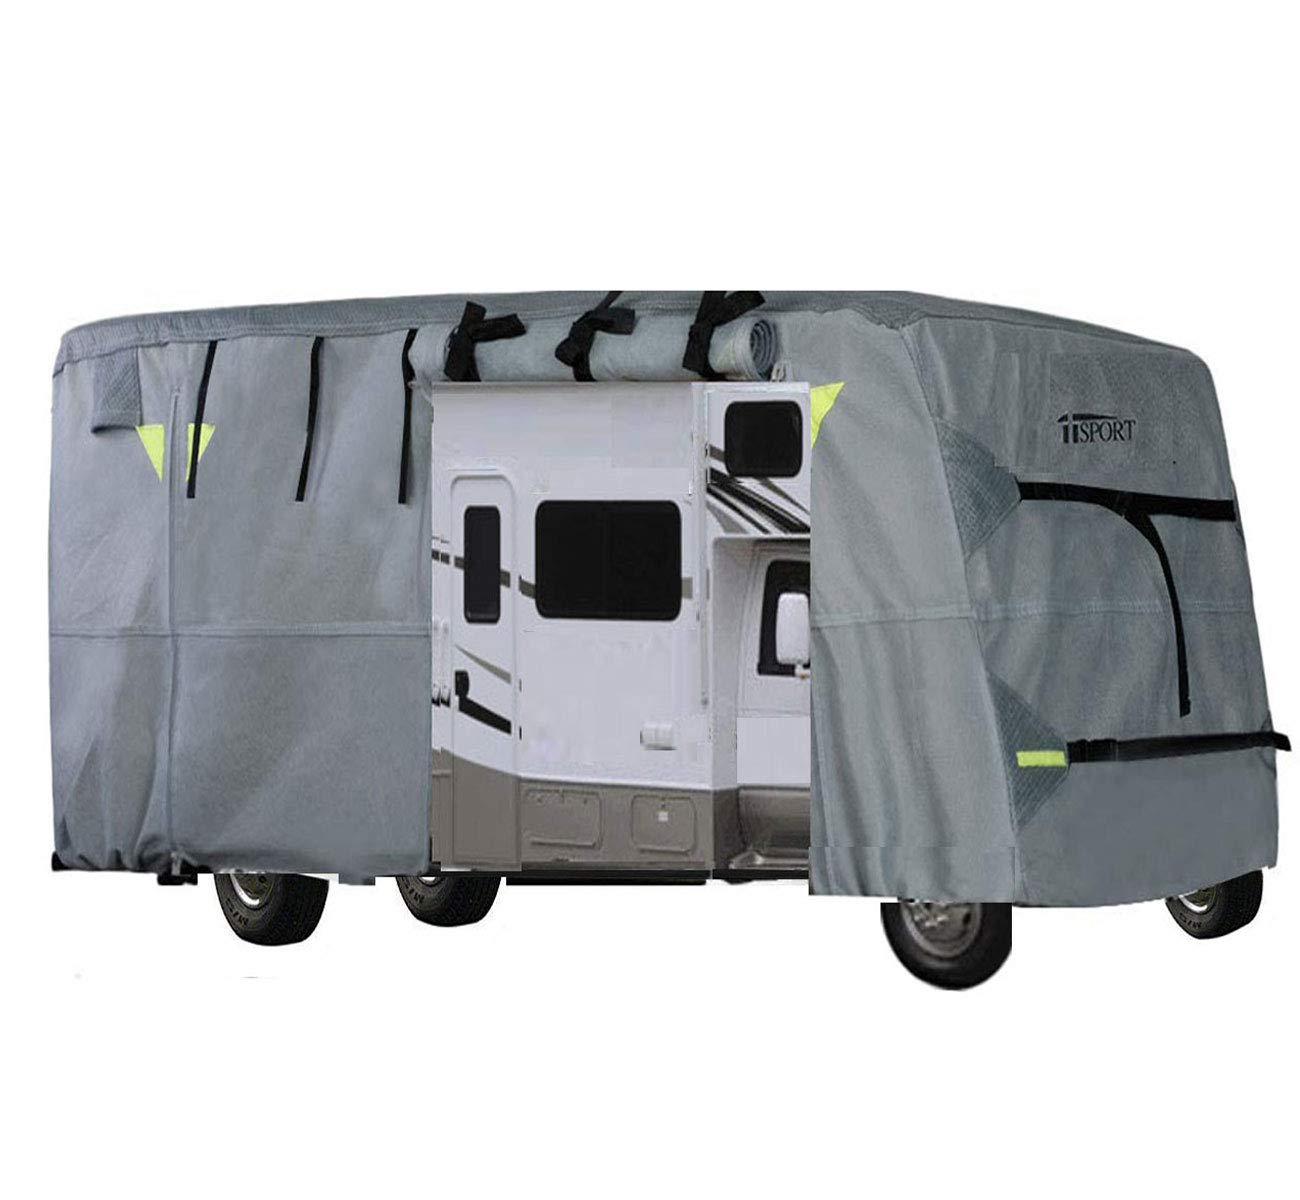 iiSPORT Extra Thick 4-Ply Top Panel Class C Motorhome Cover Fits 29'-32' RVs Zippered Adjustable Rear & Front Covers with Storage Bag, Snug-fit Elastic Hem, Strap & Buckle System by iiSPORT